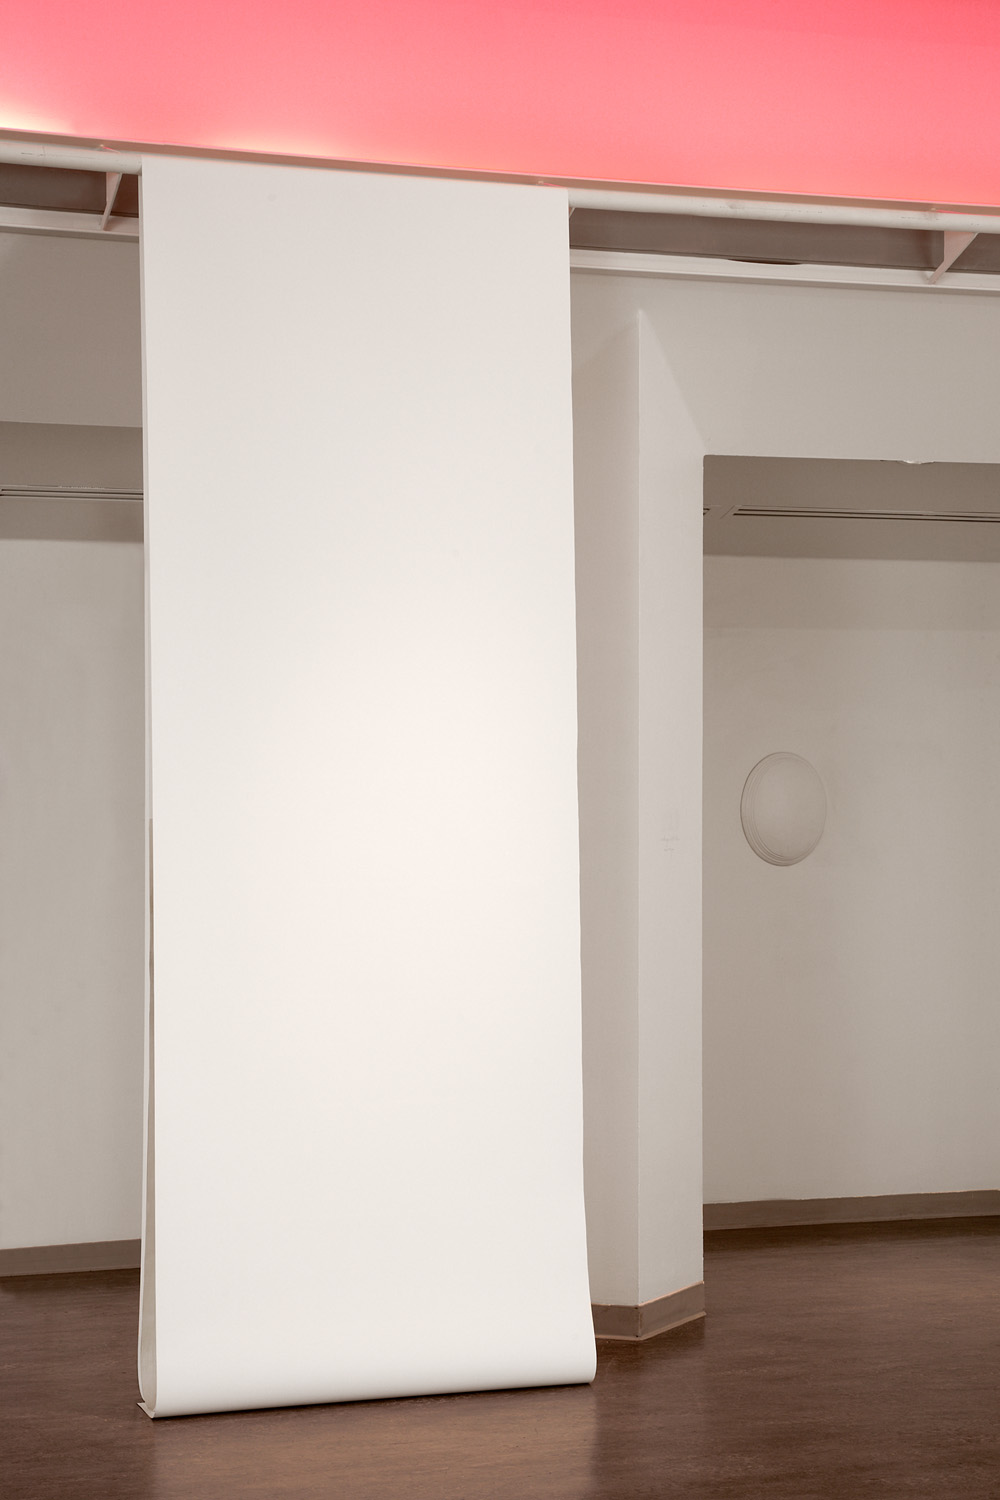 nothing but the memory   paper, wood, light  12'x6'x12'  2013